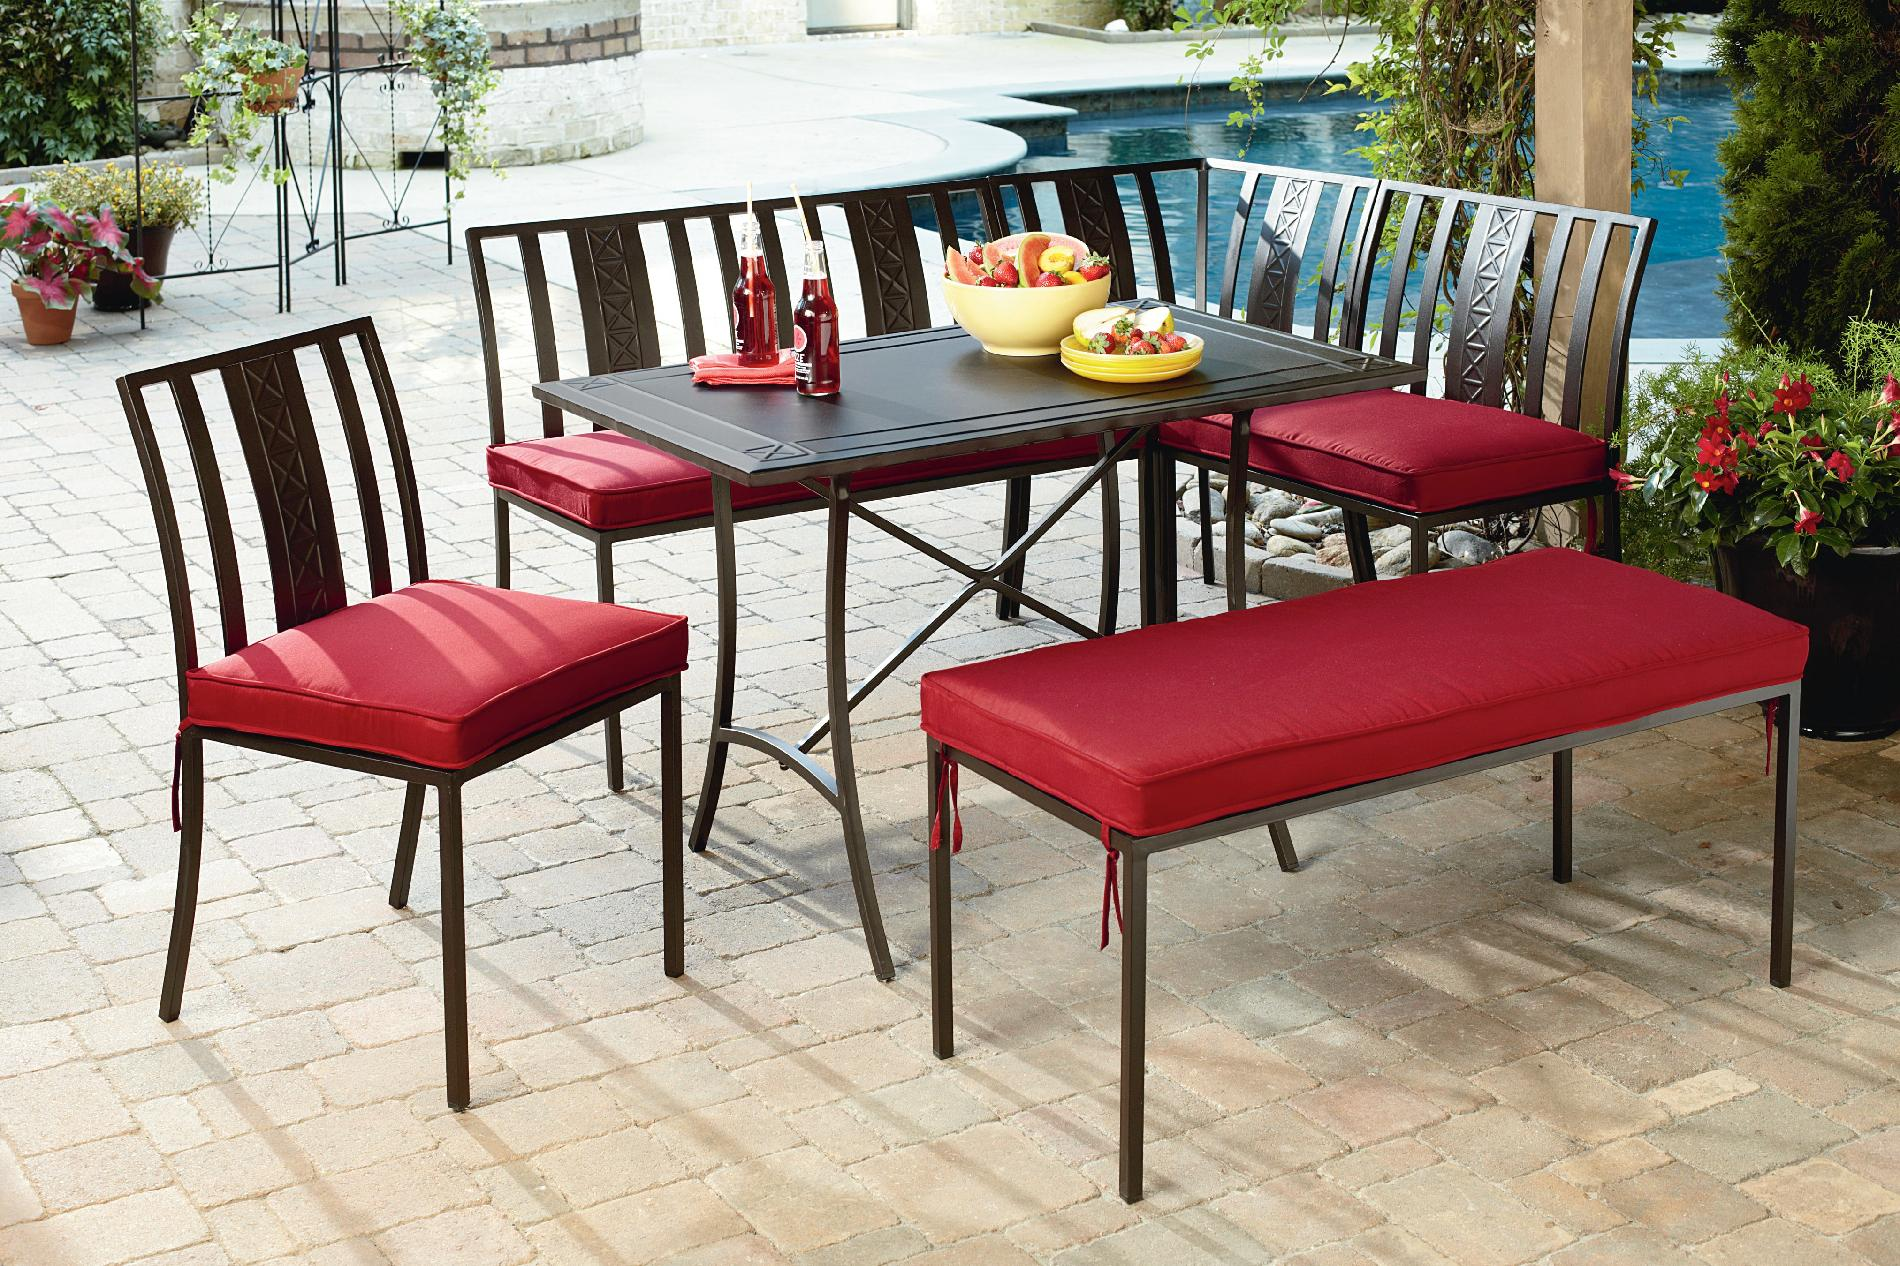 jaclyn smith jackson 6 piece nook dining set review cheap patio furniture 2014